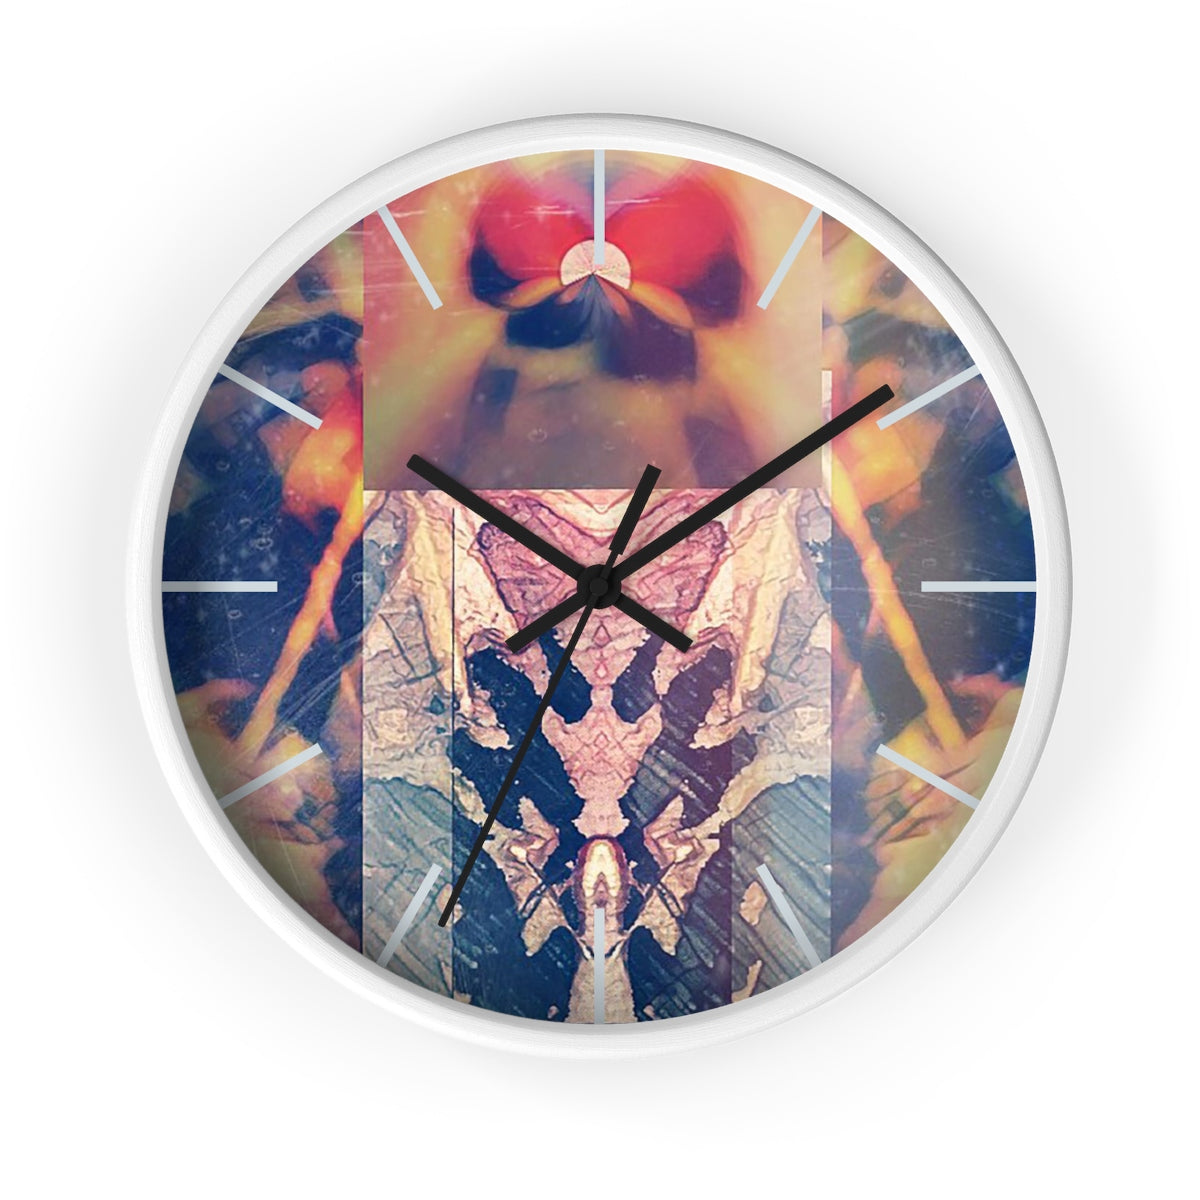 horizon Discovered Alien - Wall clock - Designed by @remlor - Remlor Art